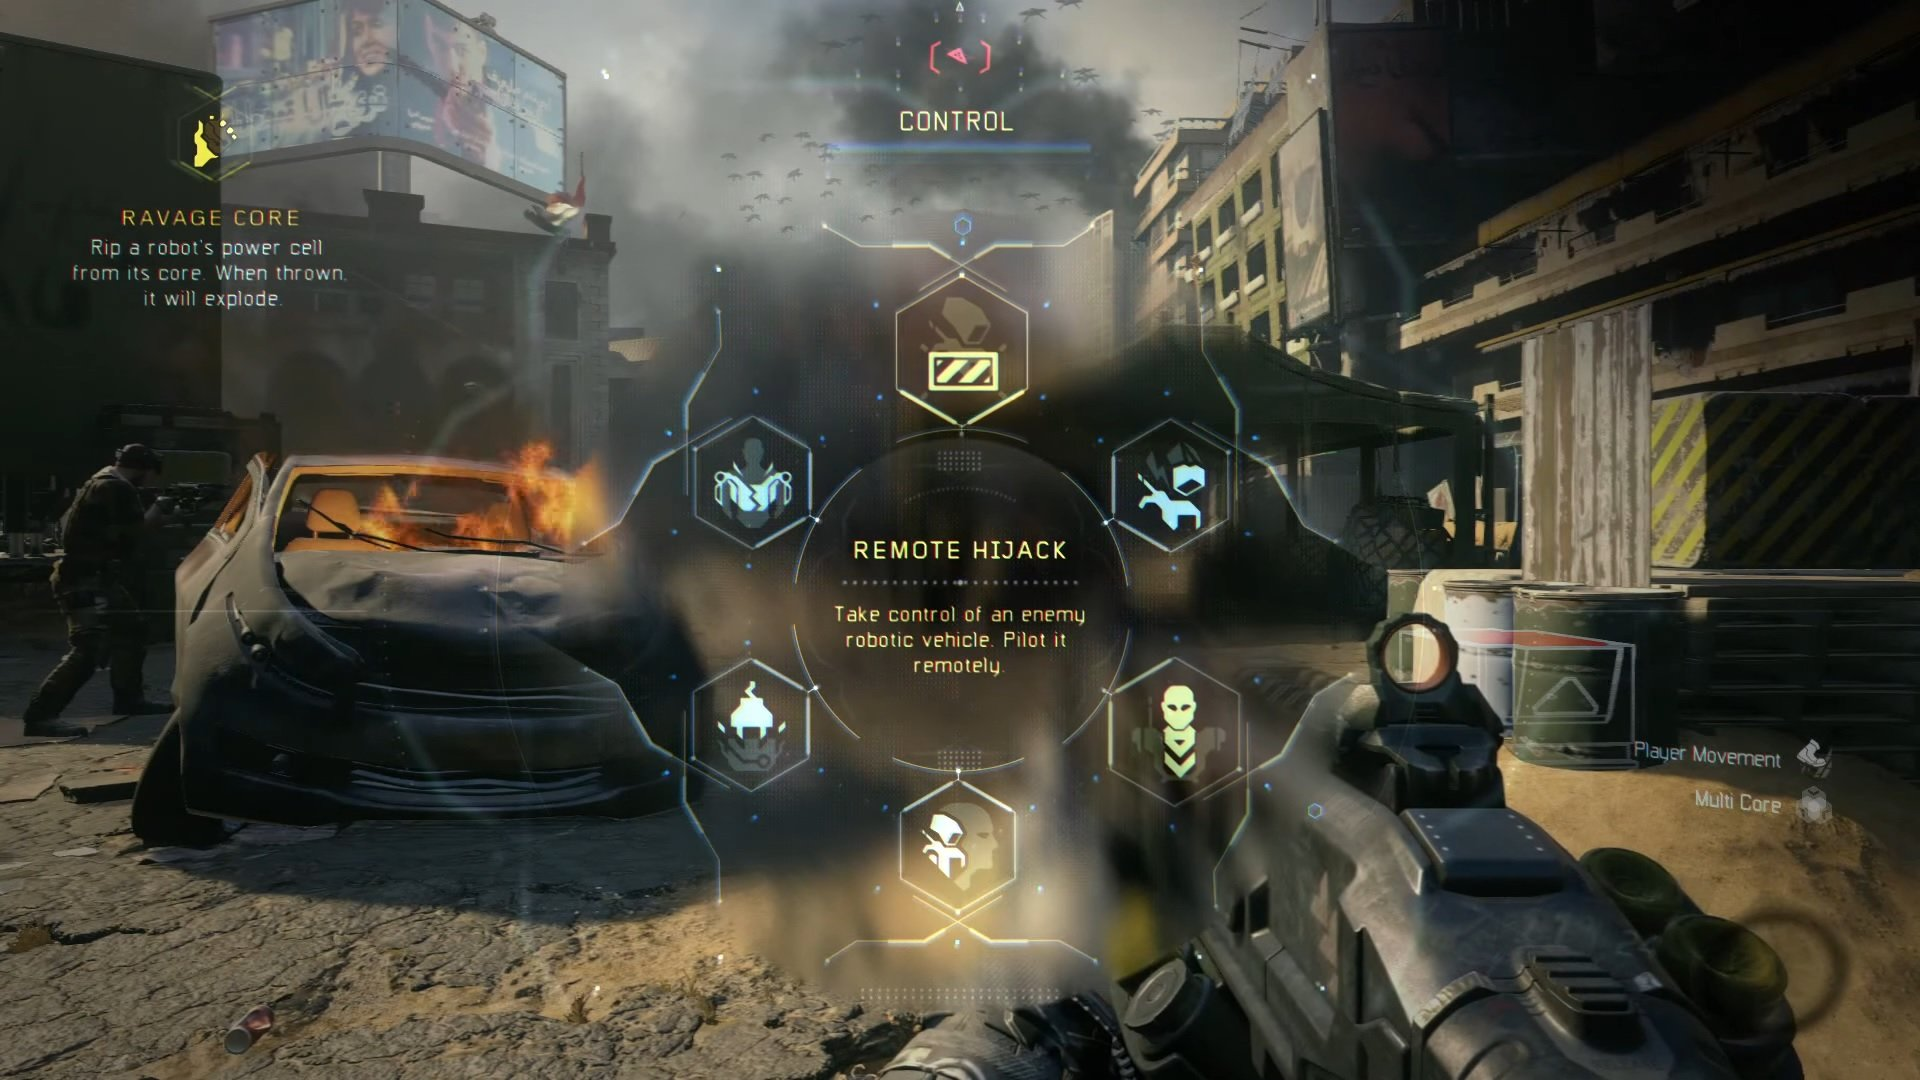 Call Of Duty Black Ops 3 Chaos Cybercore Abilities Deteriorates